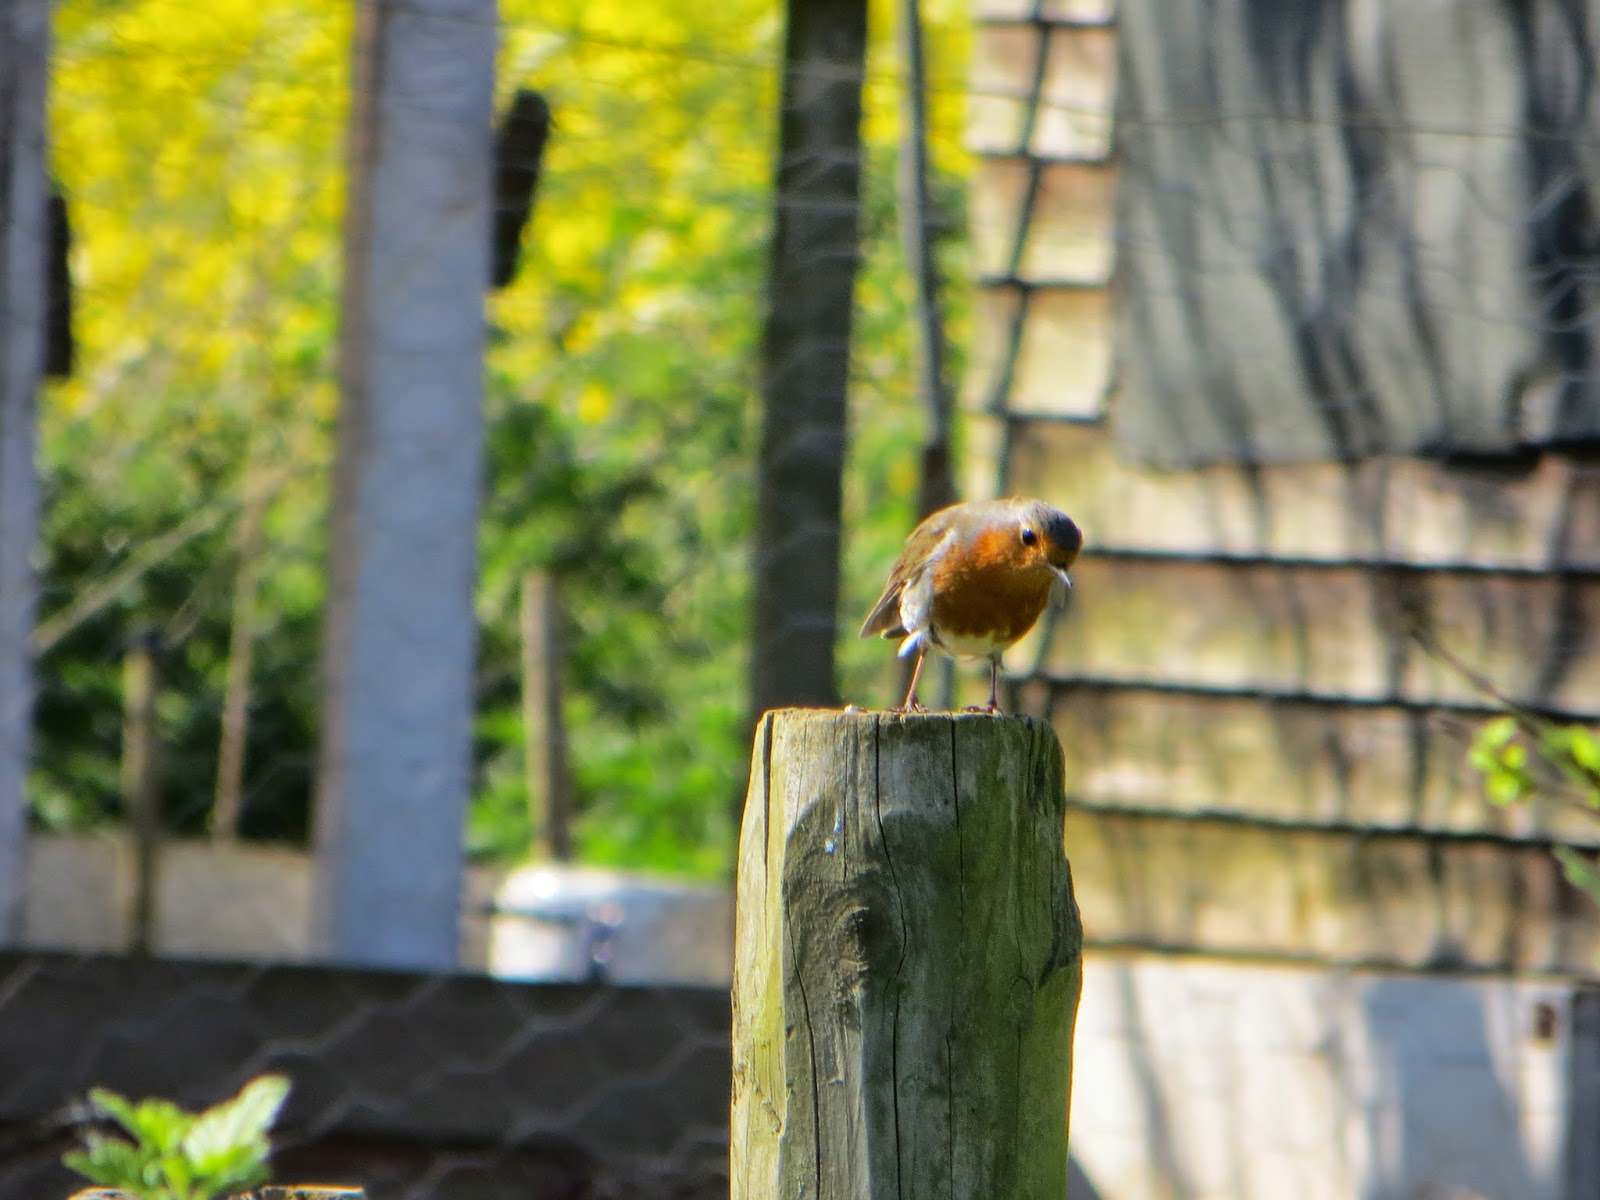 A robin came to visit.